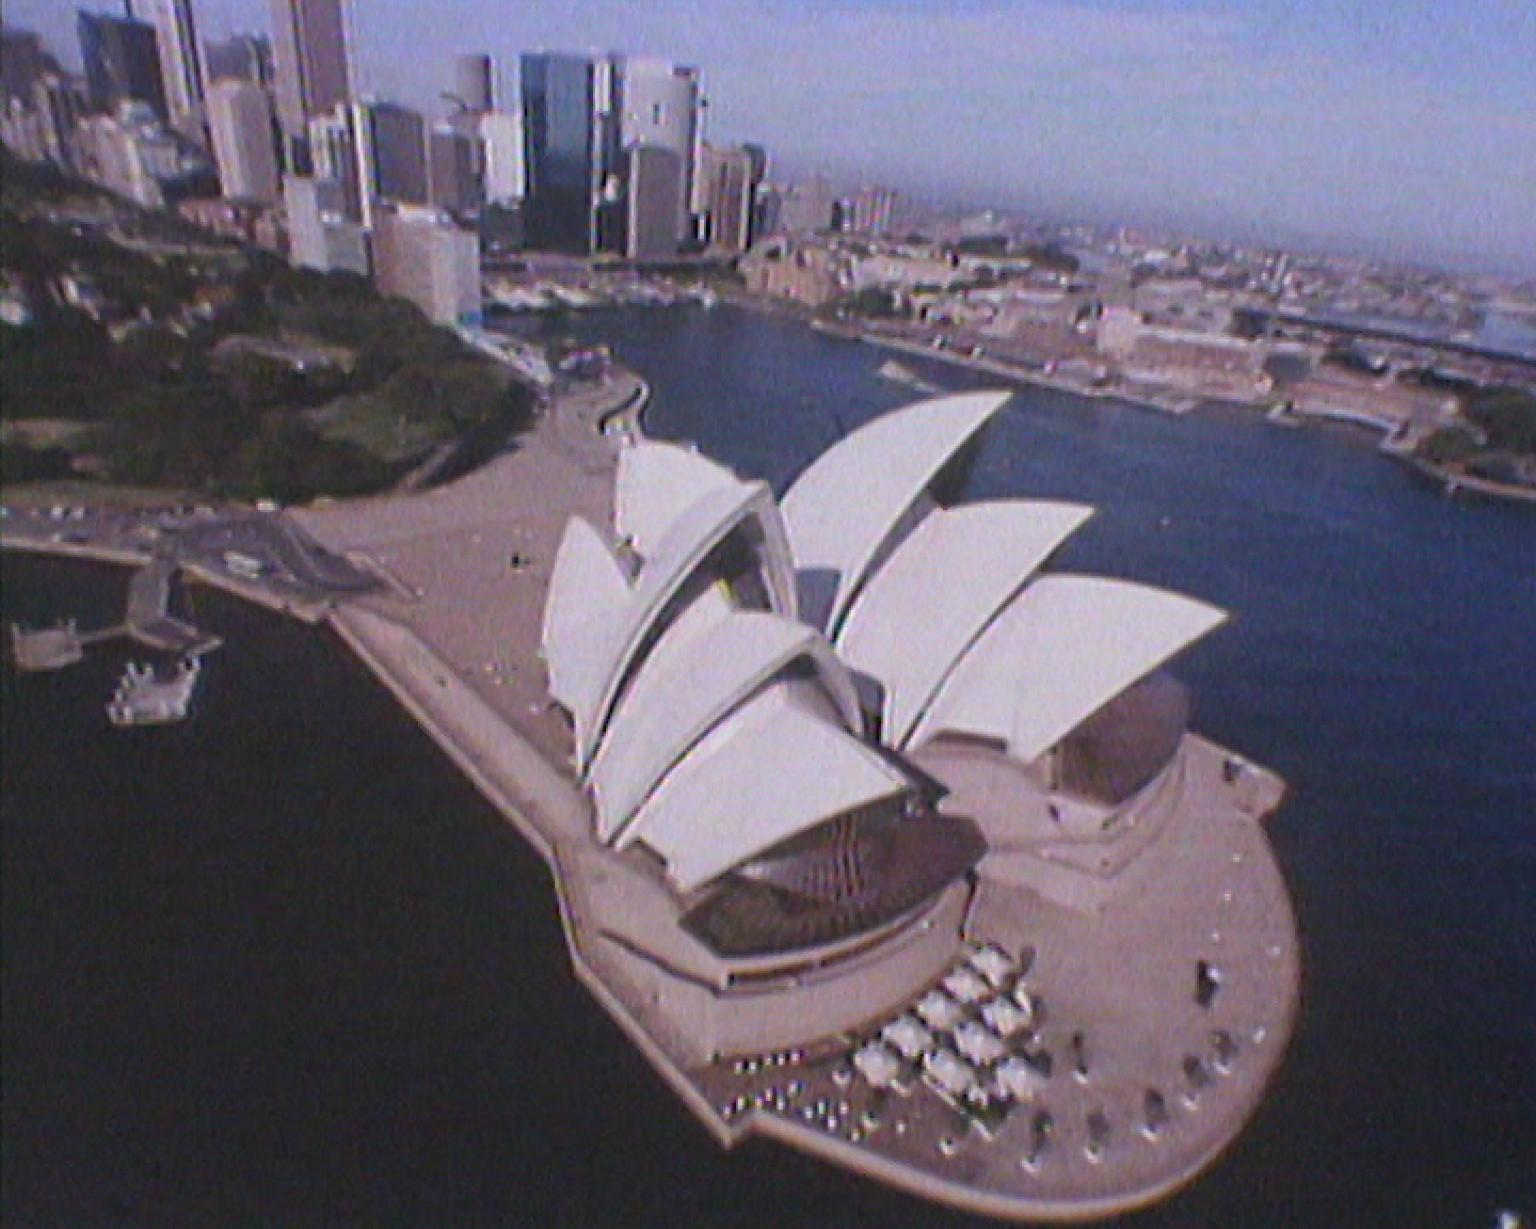 Overhead shot of the Sydney Opera House, with Circular Quay and the city in the background.